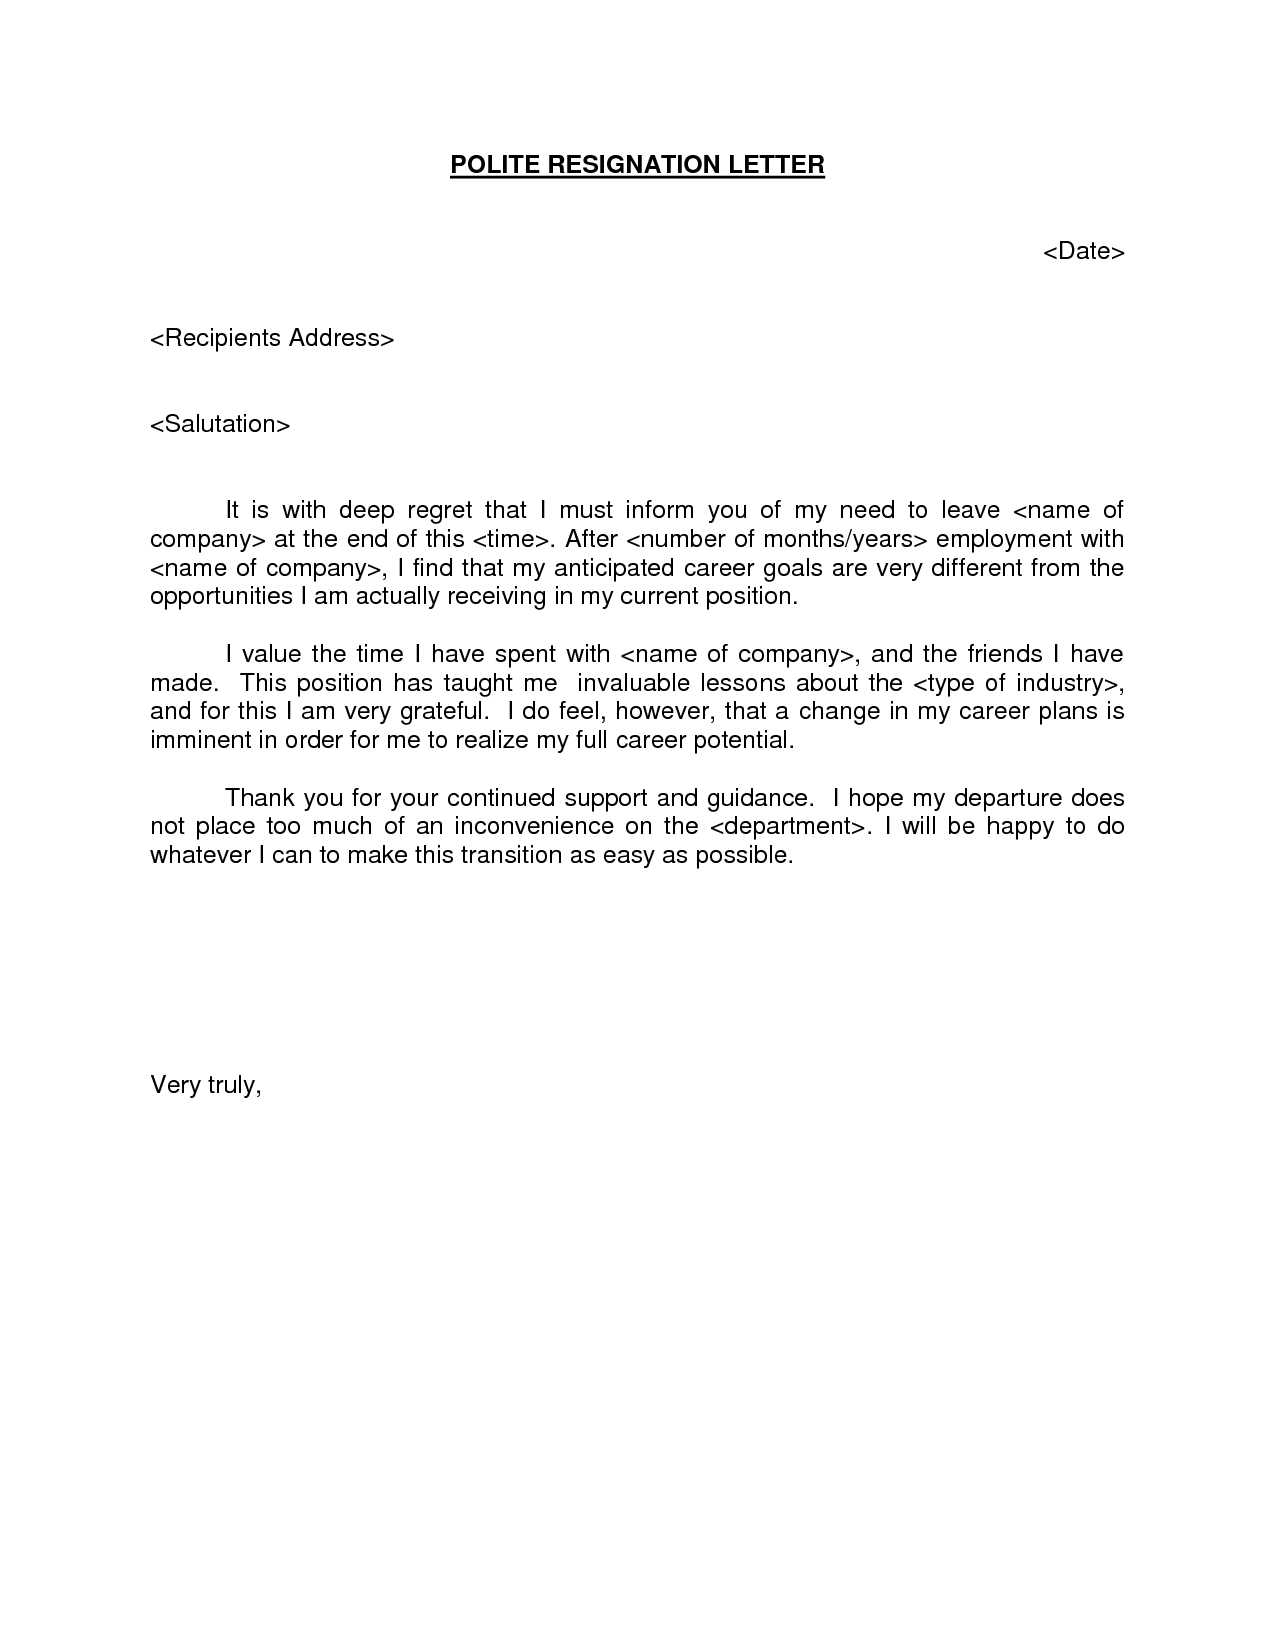 Letter Of Recommendation Template Word - Polite Resignation Letter Bestdealformoneywriting A Letter